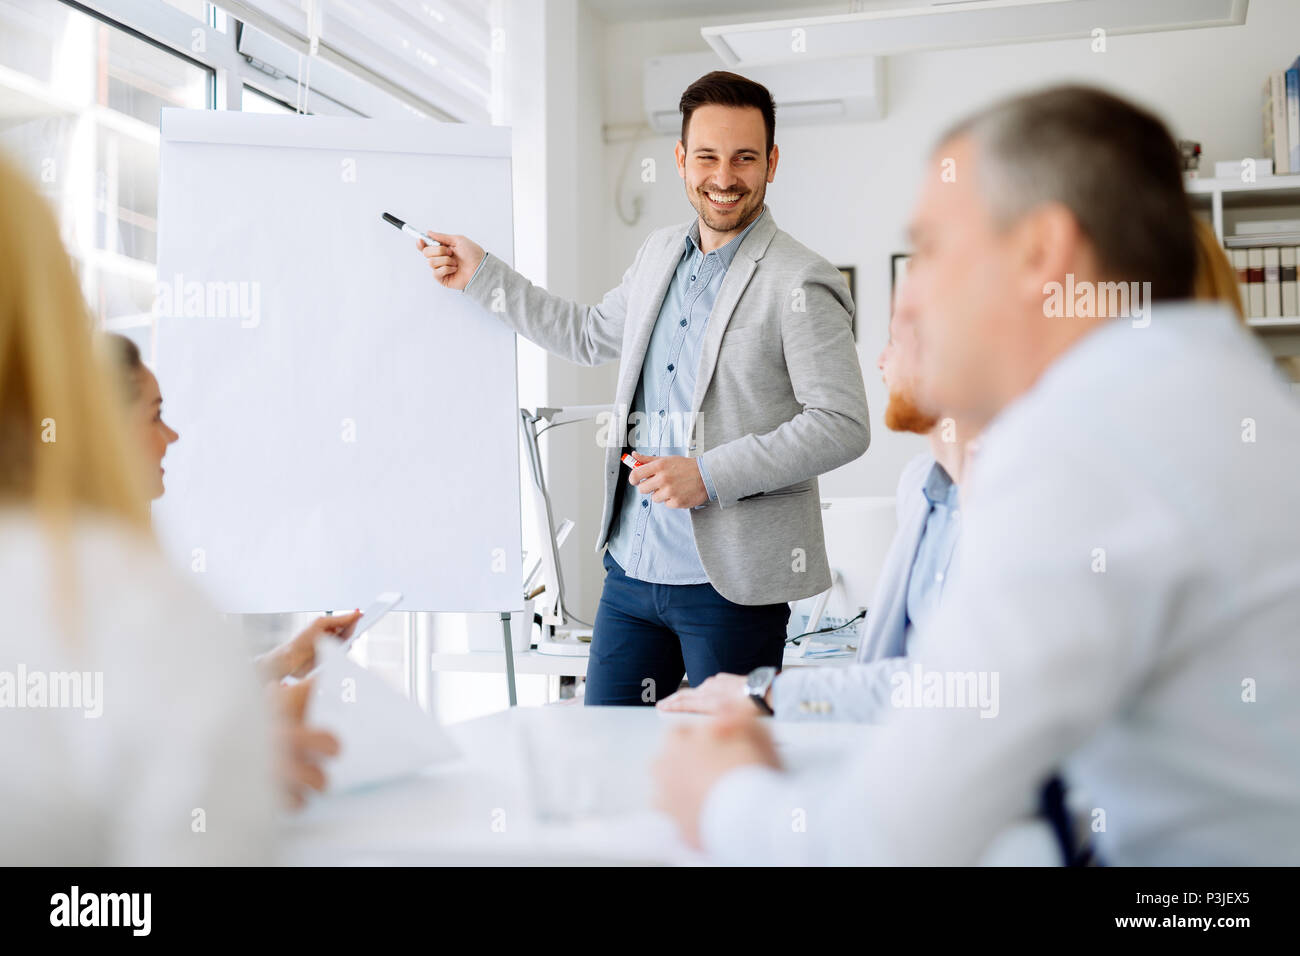 Presentation and collaboration by business people - Stock Image